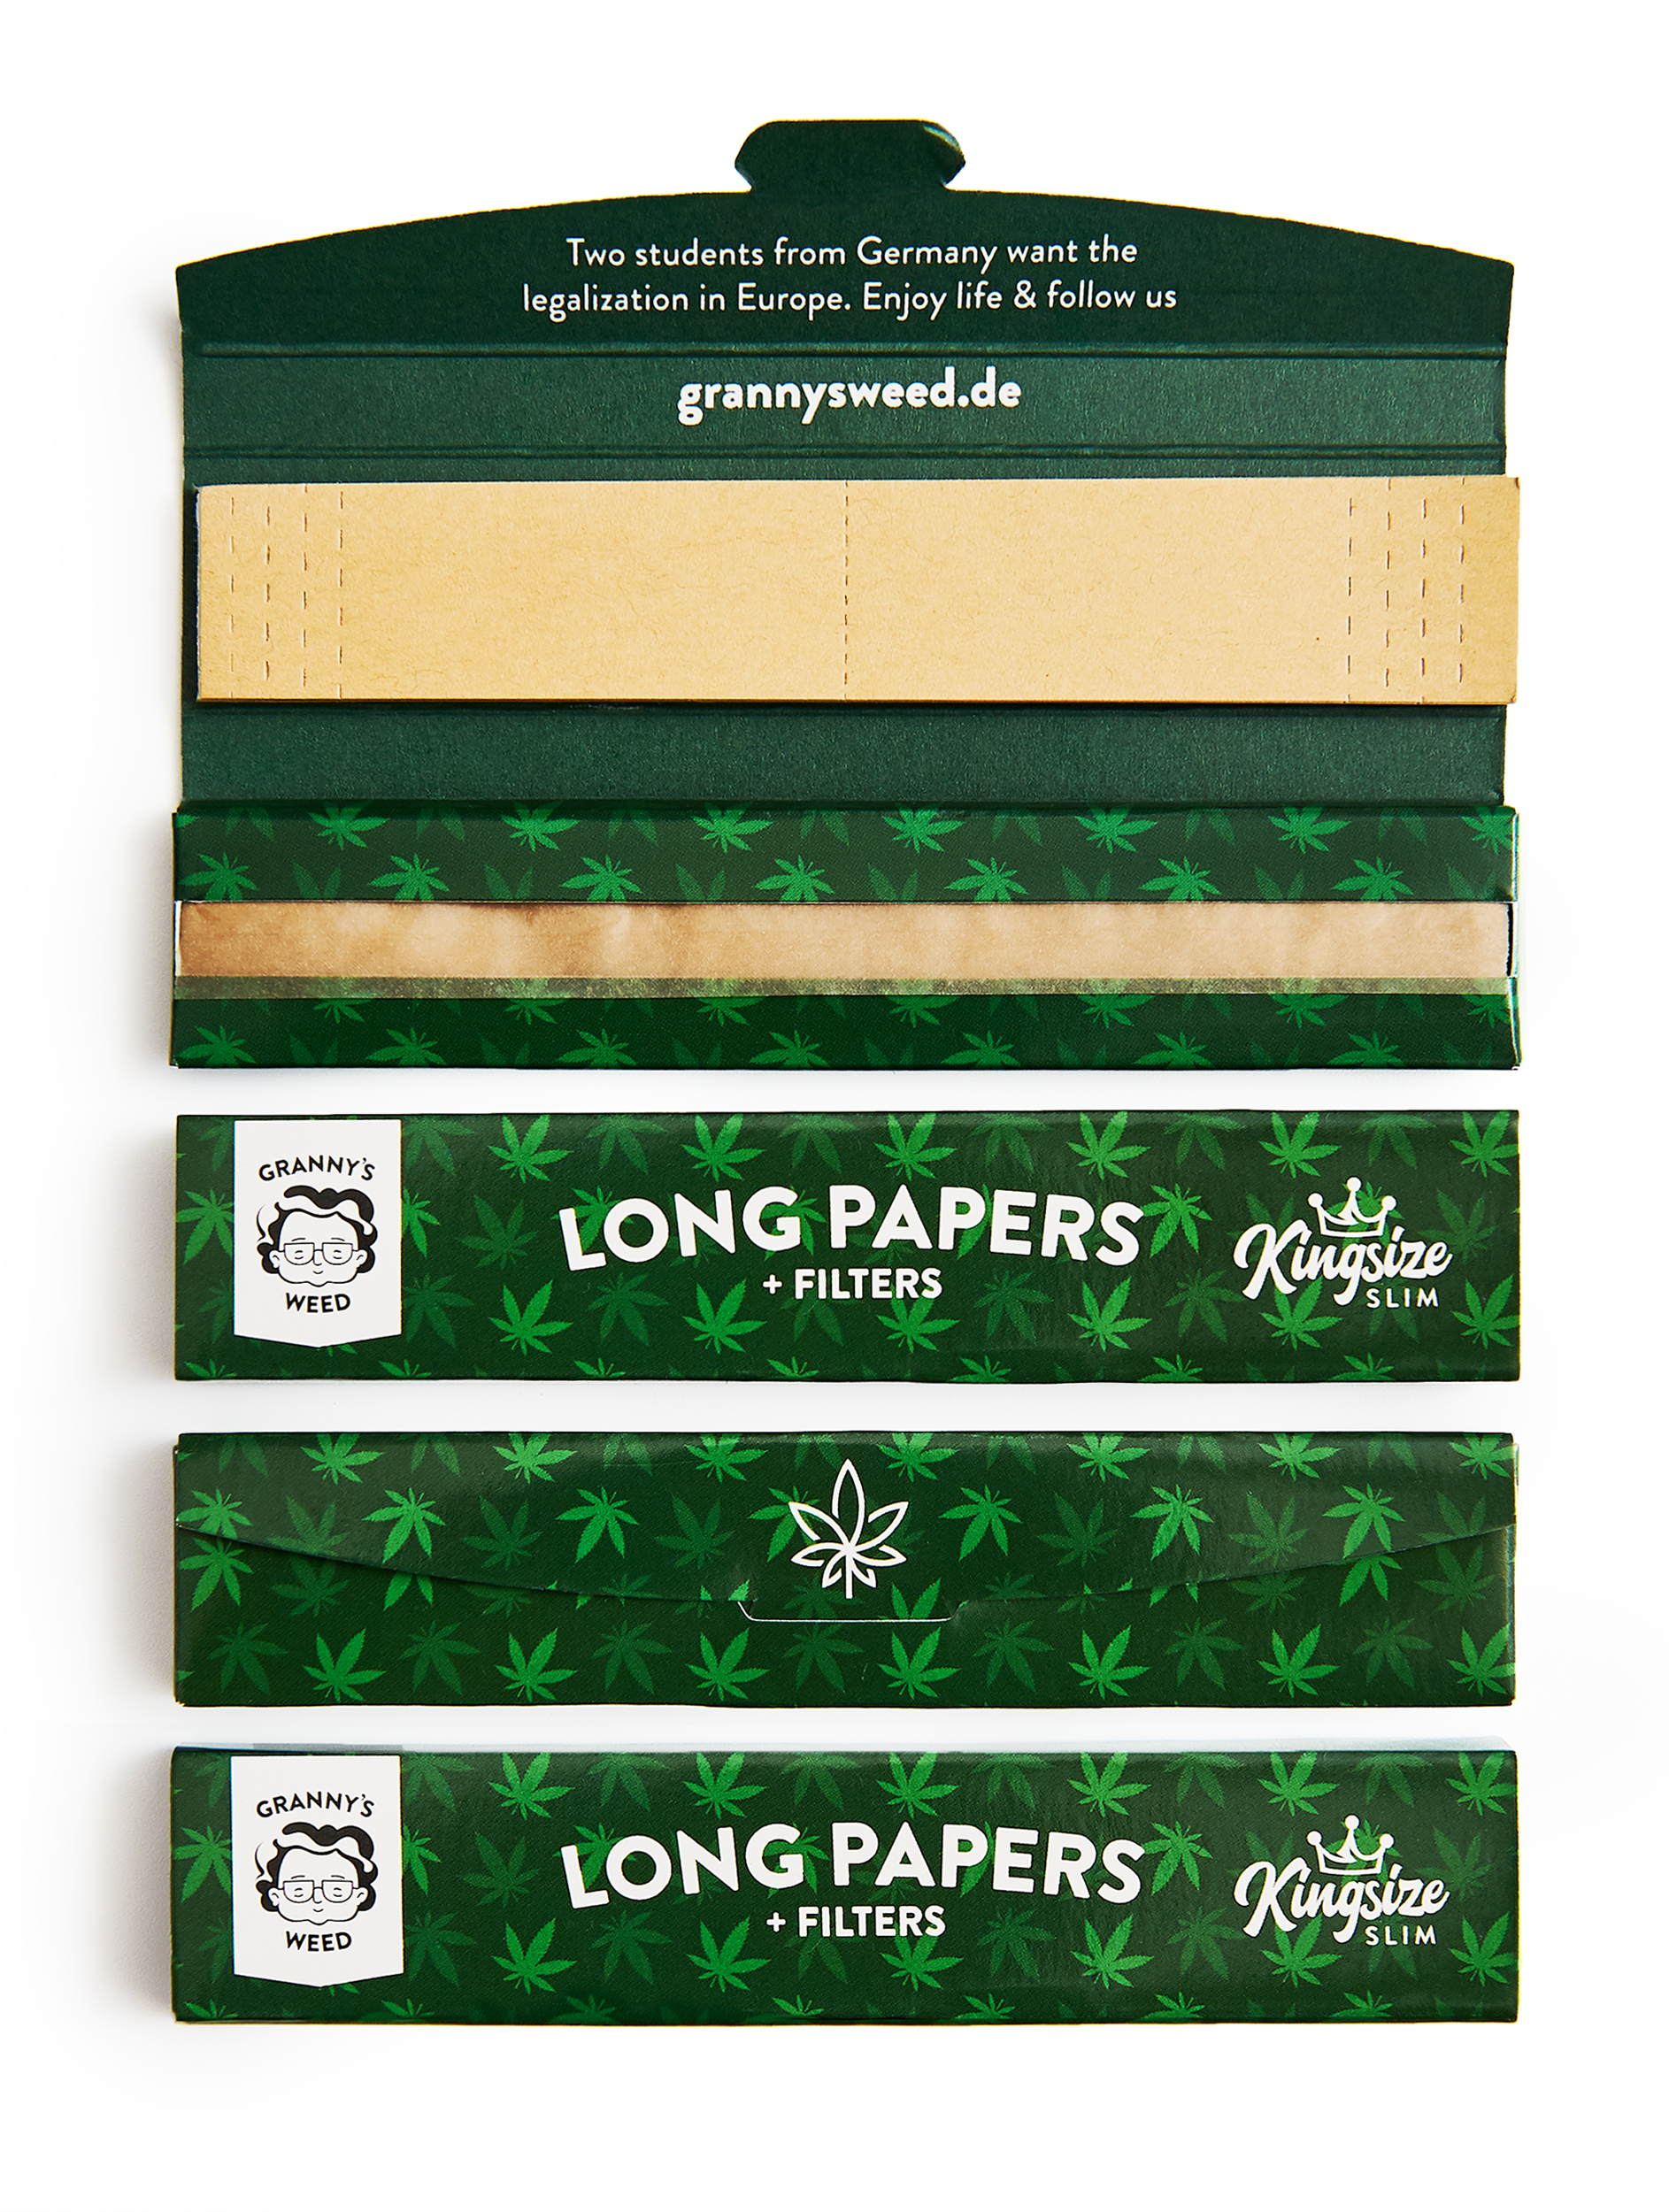 Long Papers extra Slim King Size - Grannys Weed